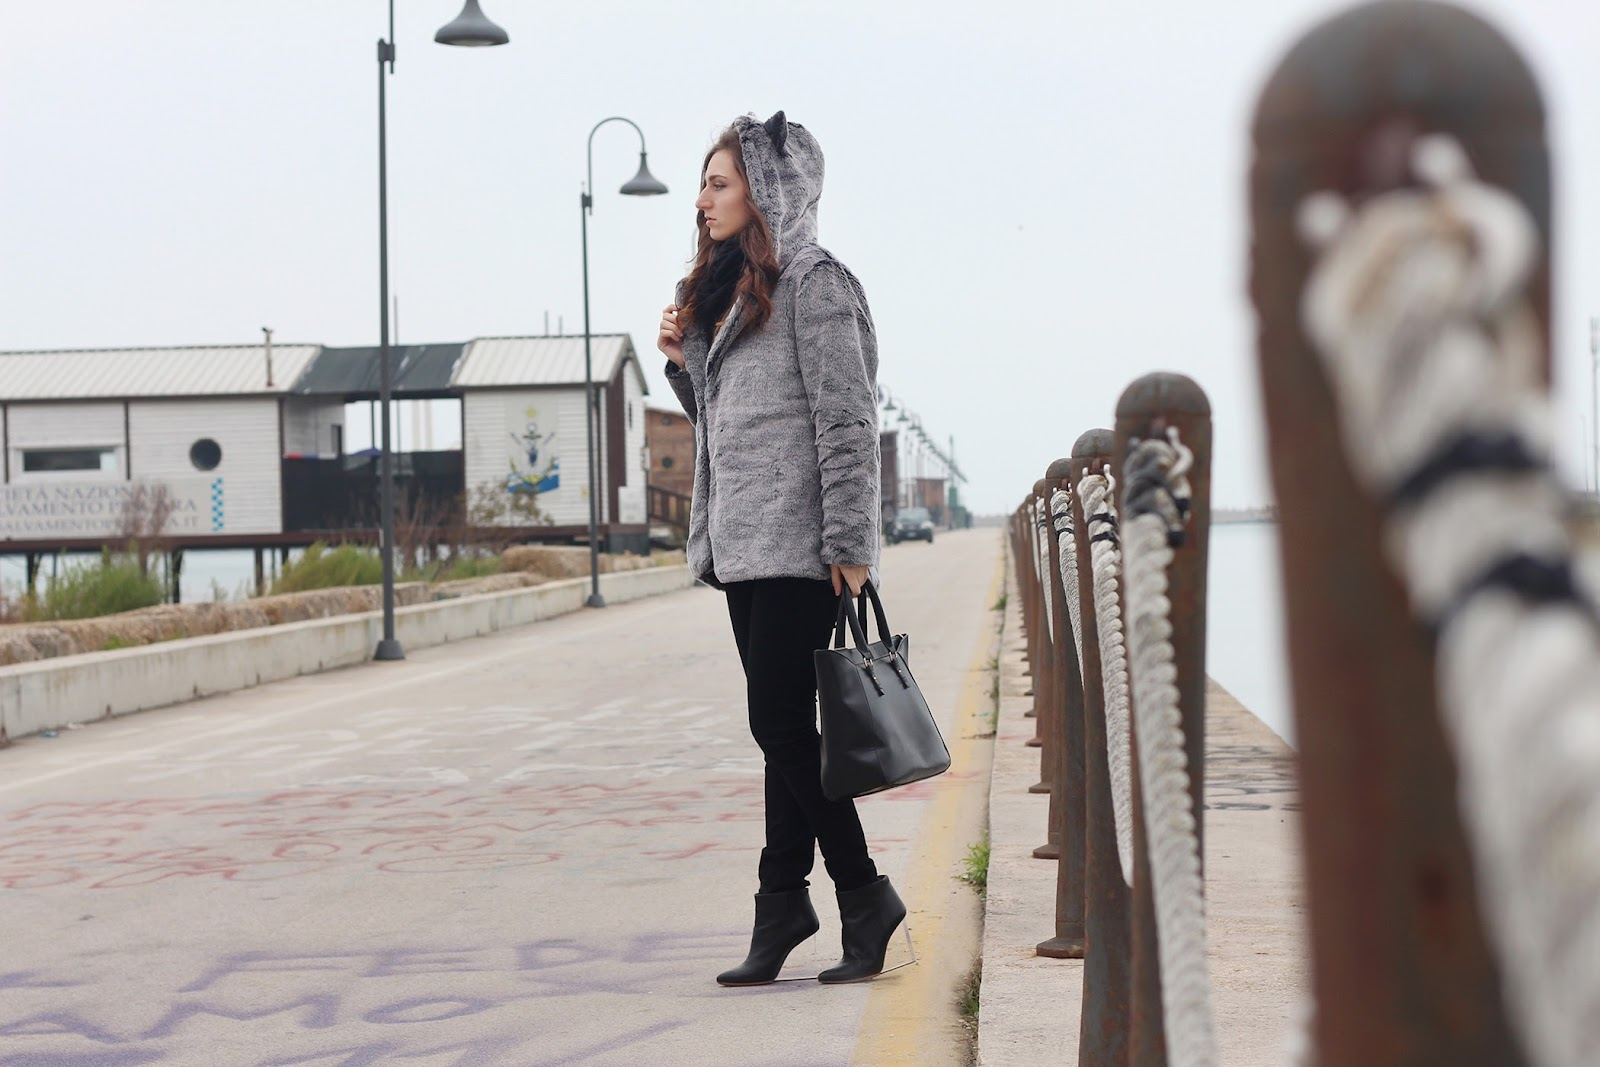 fashion style look trend outfit ootd vogue glamour girl love italian blogger pescara sammydress ears faux fur zara bag black boots hm maison martin margiela transparent heels shoes